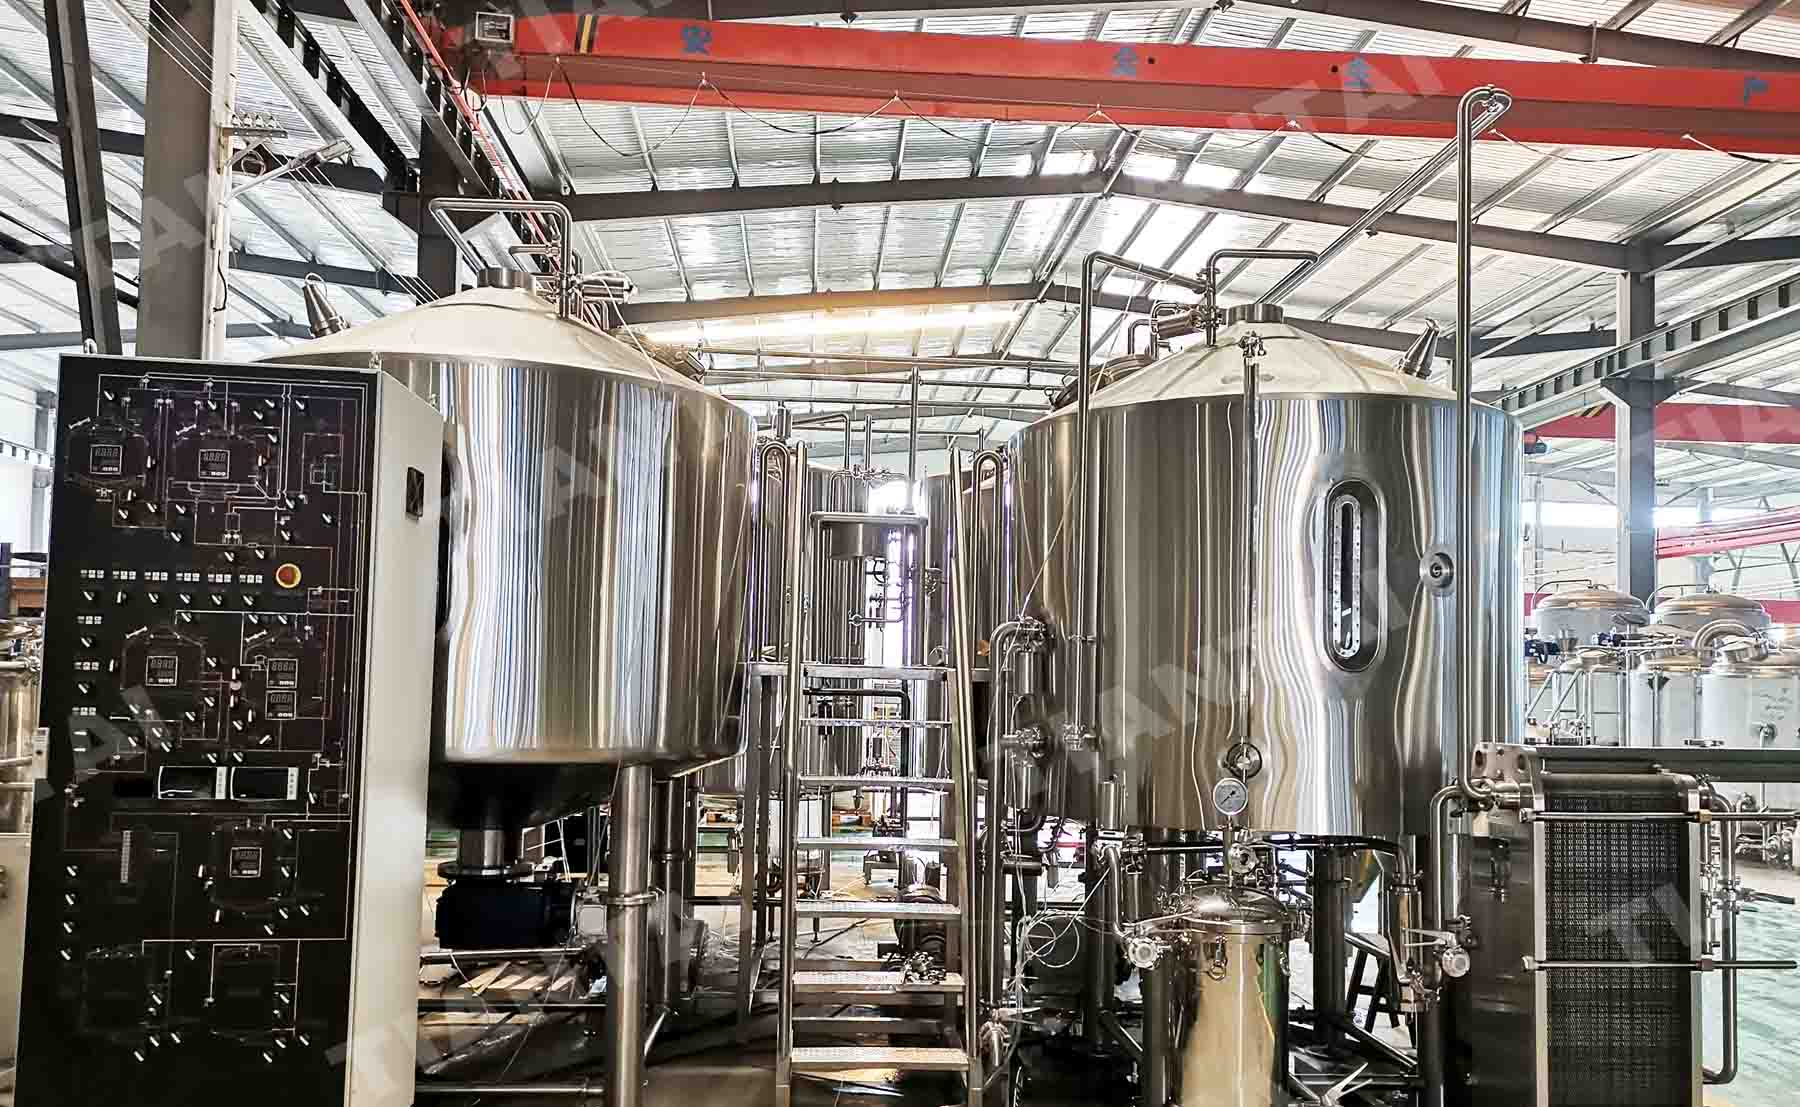 Australia breweries Equipment / microbrewery equipment for